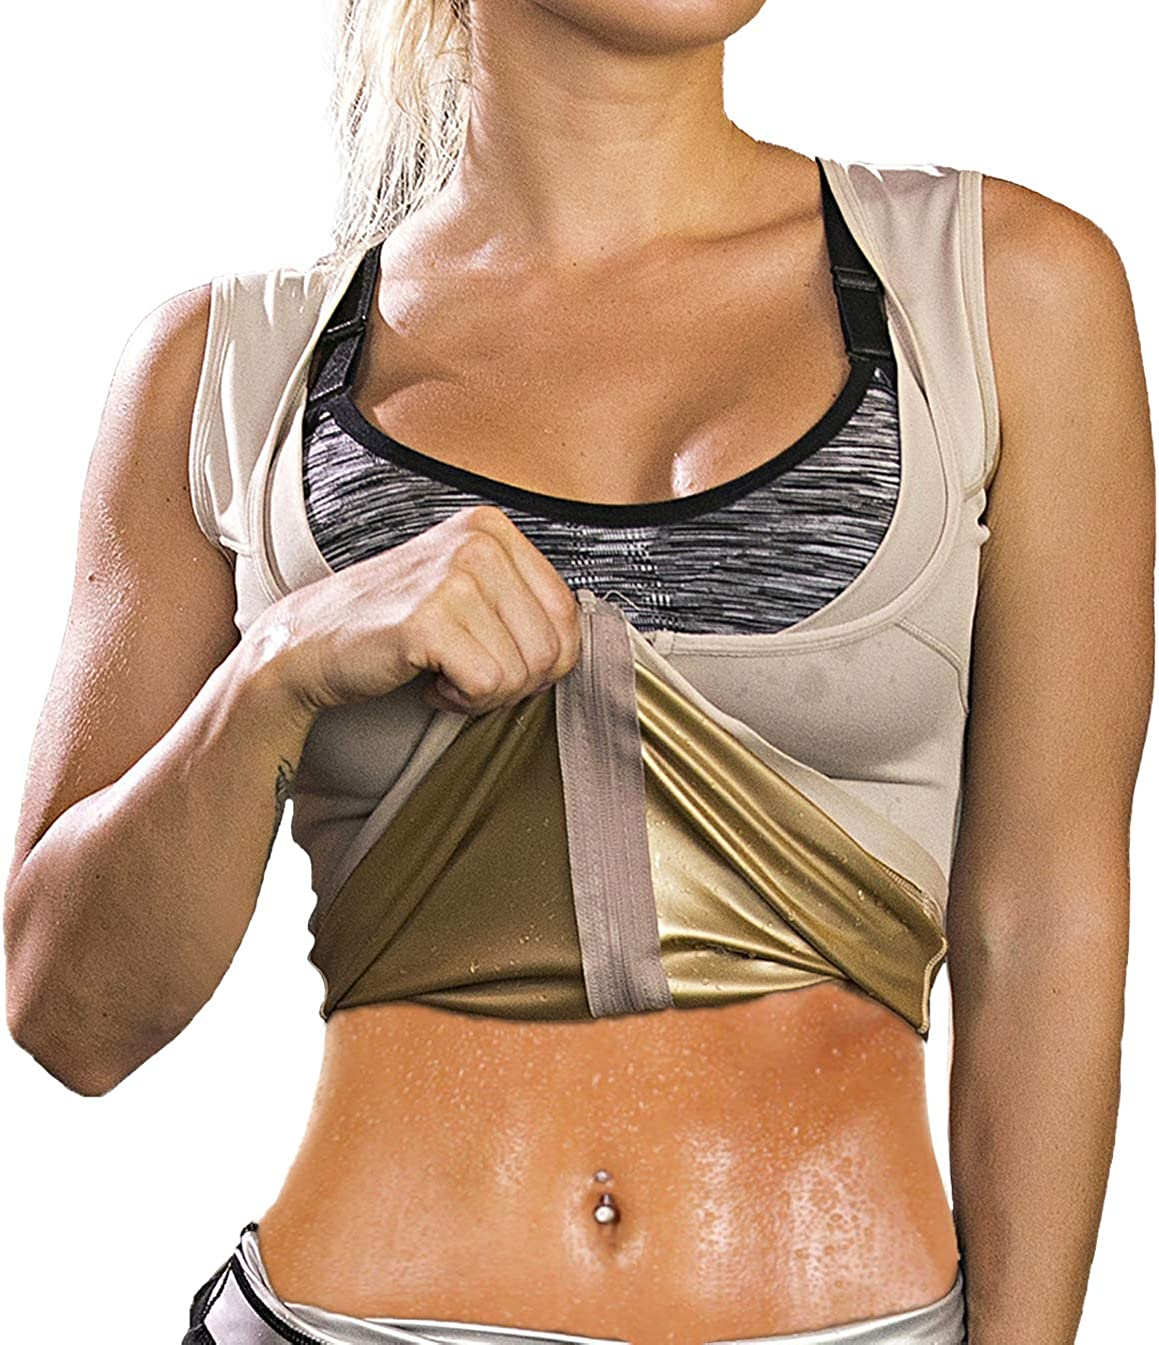 HOMETA Sweat Vest for Women Waist Trainer Vest for Women Slimming Polymer Sauna Vest Tank Top for Weight Loss Body Shaper Shirts : Sports & Outdoors